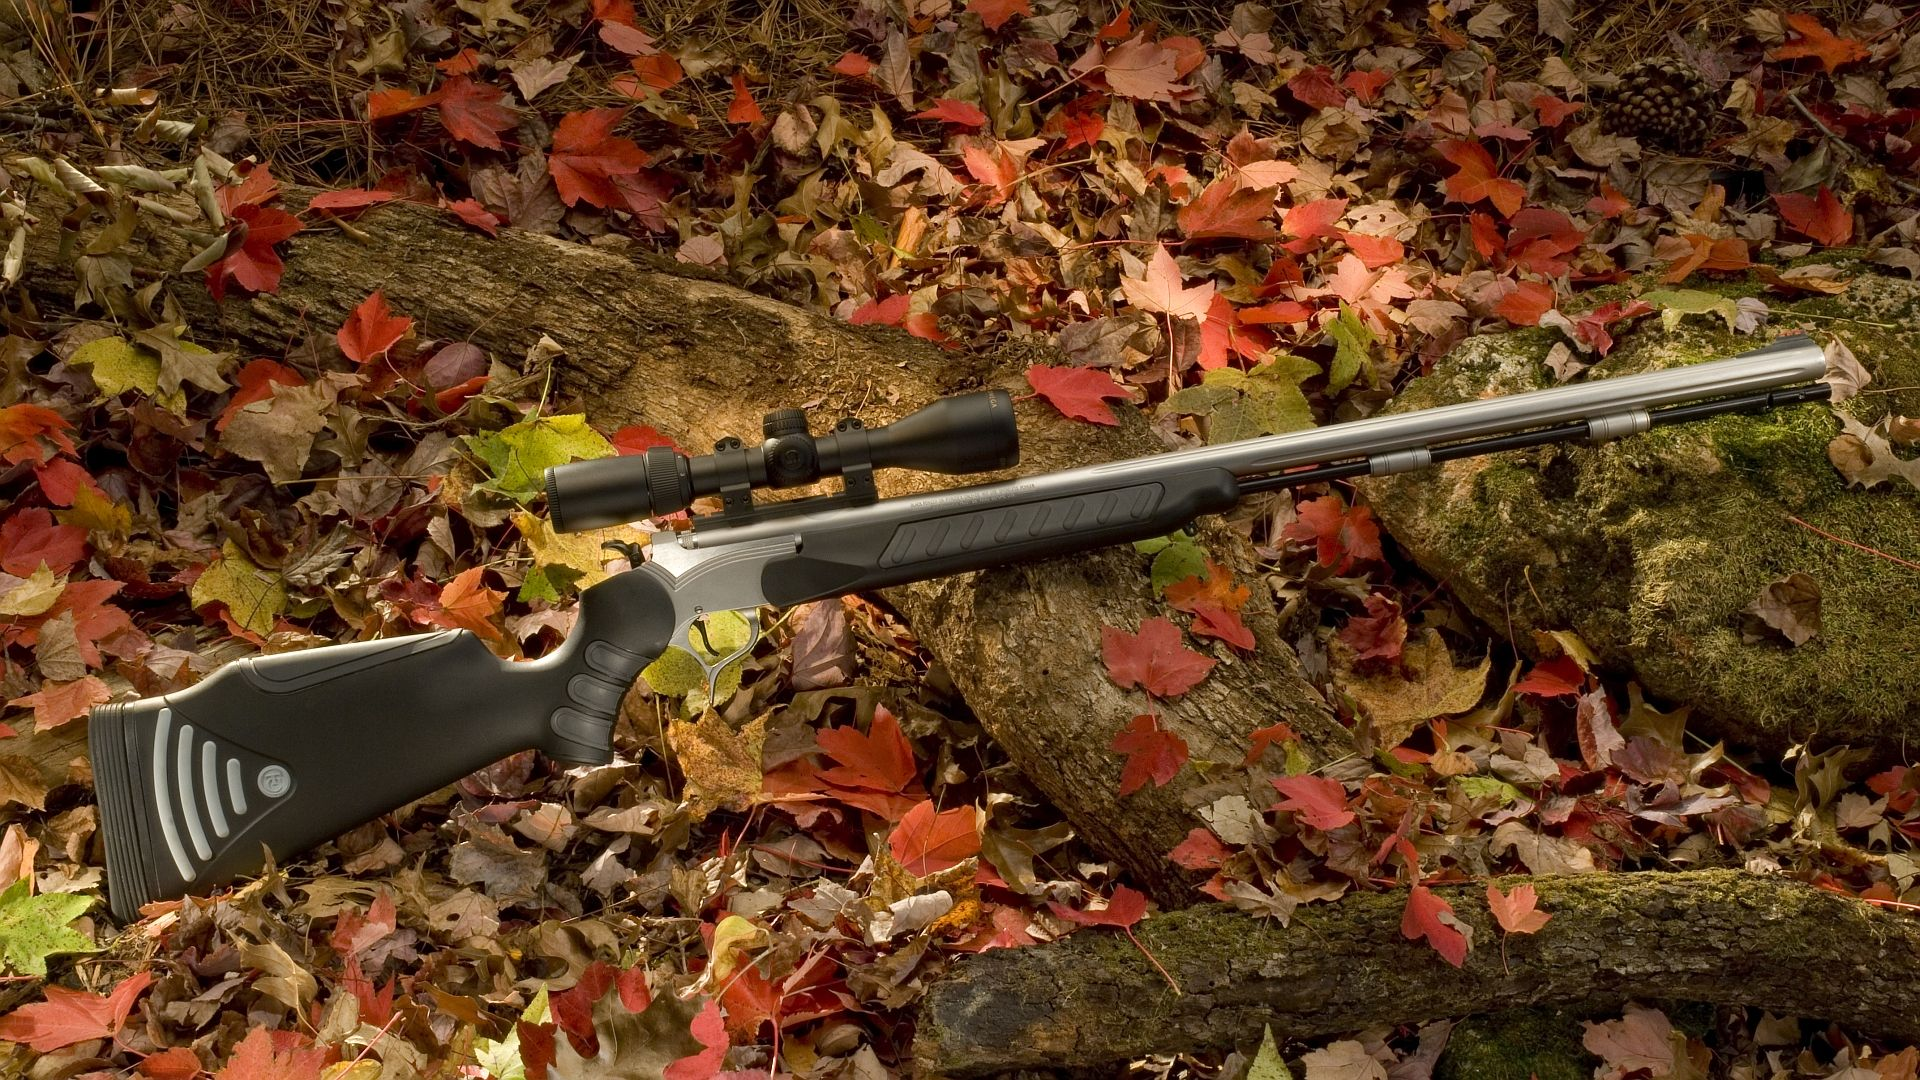 Hunting download free wallpaper image search